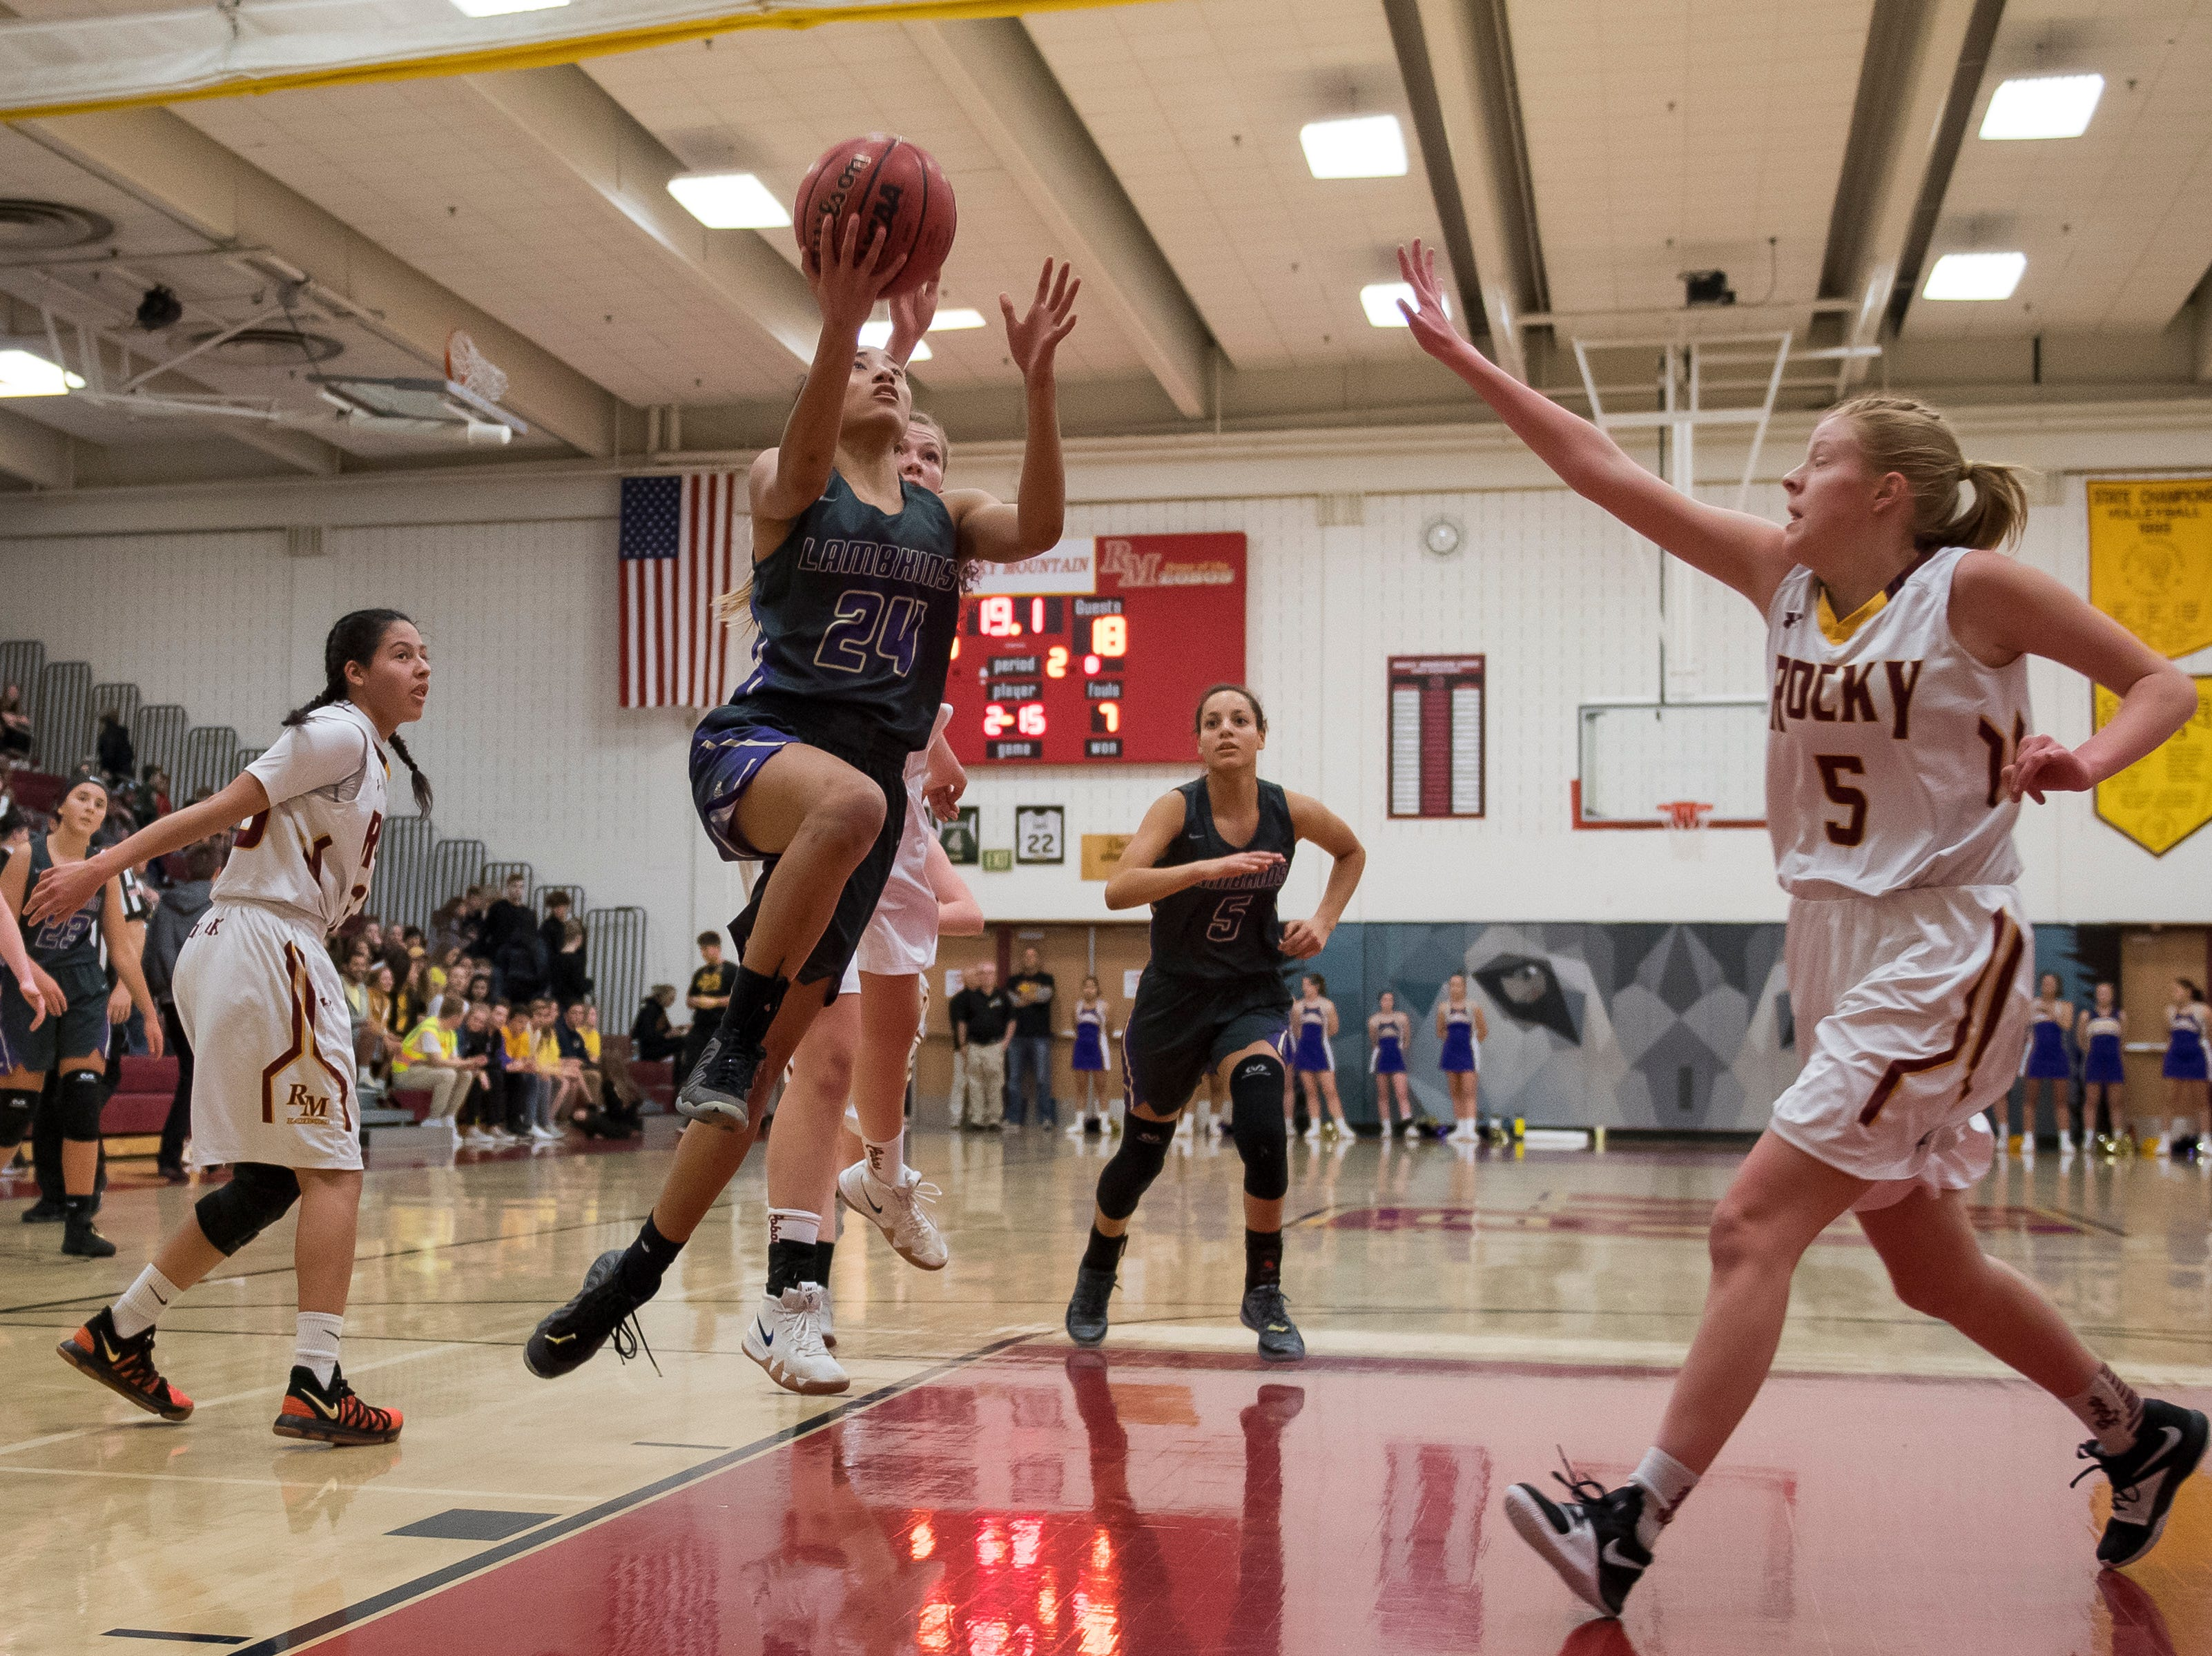 Fort Collins High School senior Isabel Layne (24) goes up for a layup against Rocky Mountain High School senior Chloe Eberl (5) on Friday, Jan. 18, 2019, at Rocky Mountain High School in Fort Collins, Colo.